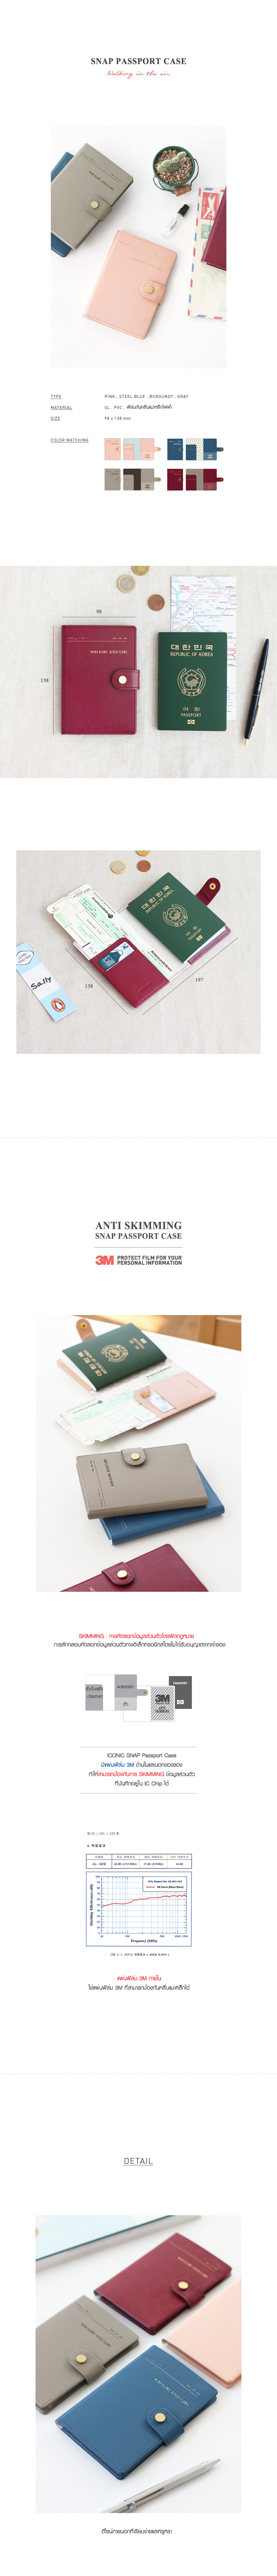 snap-passport-case-2.jpg